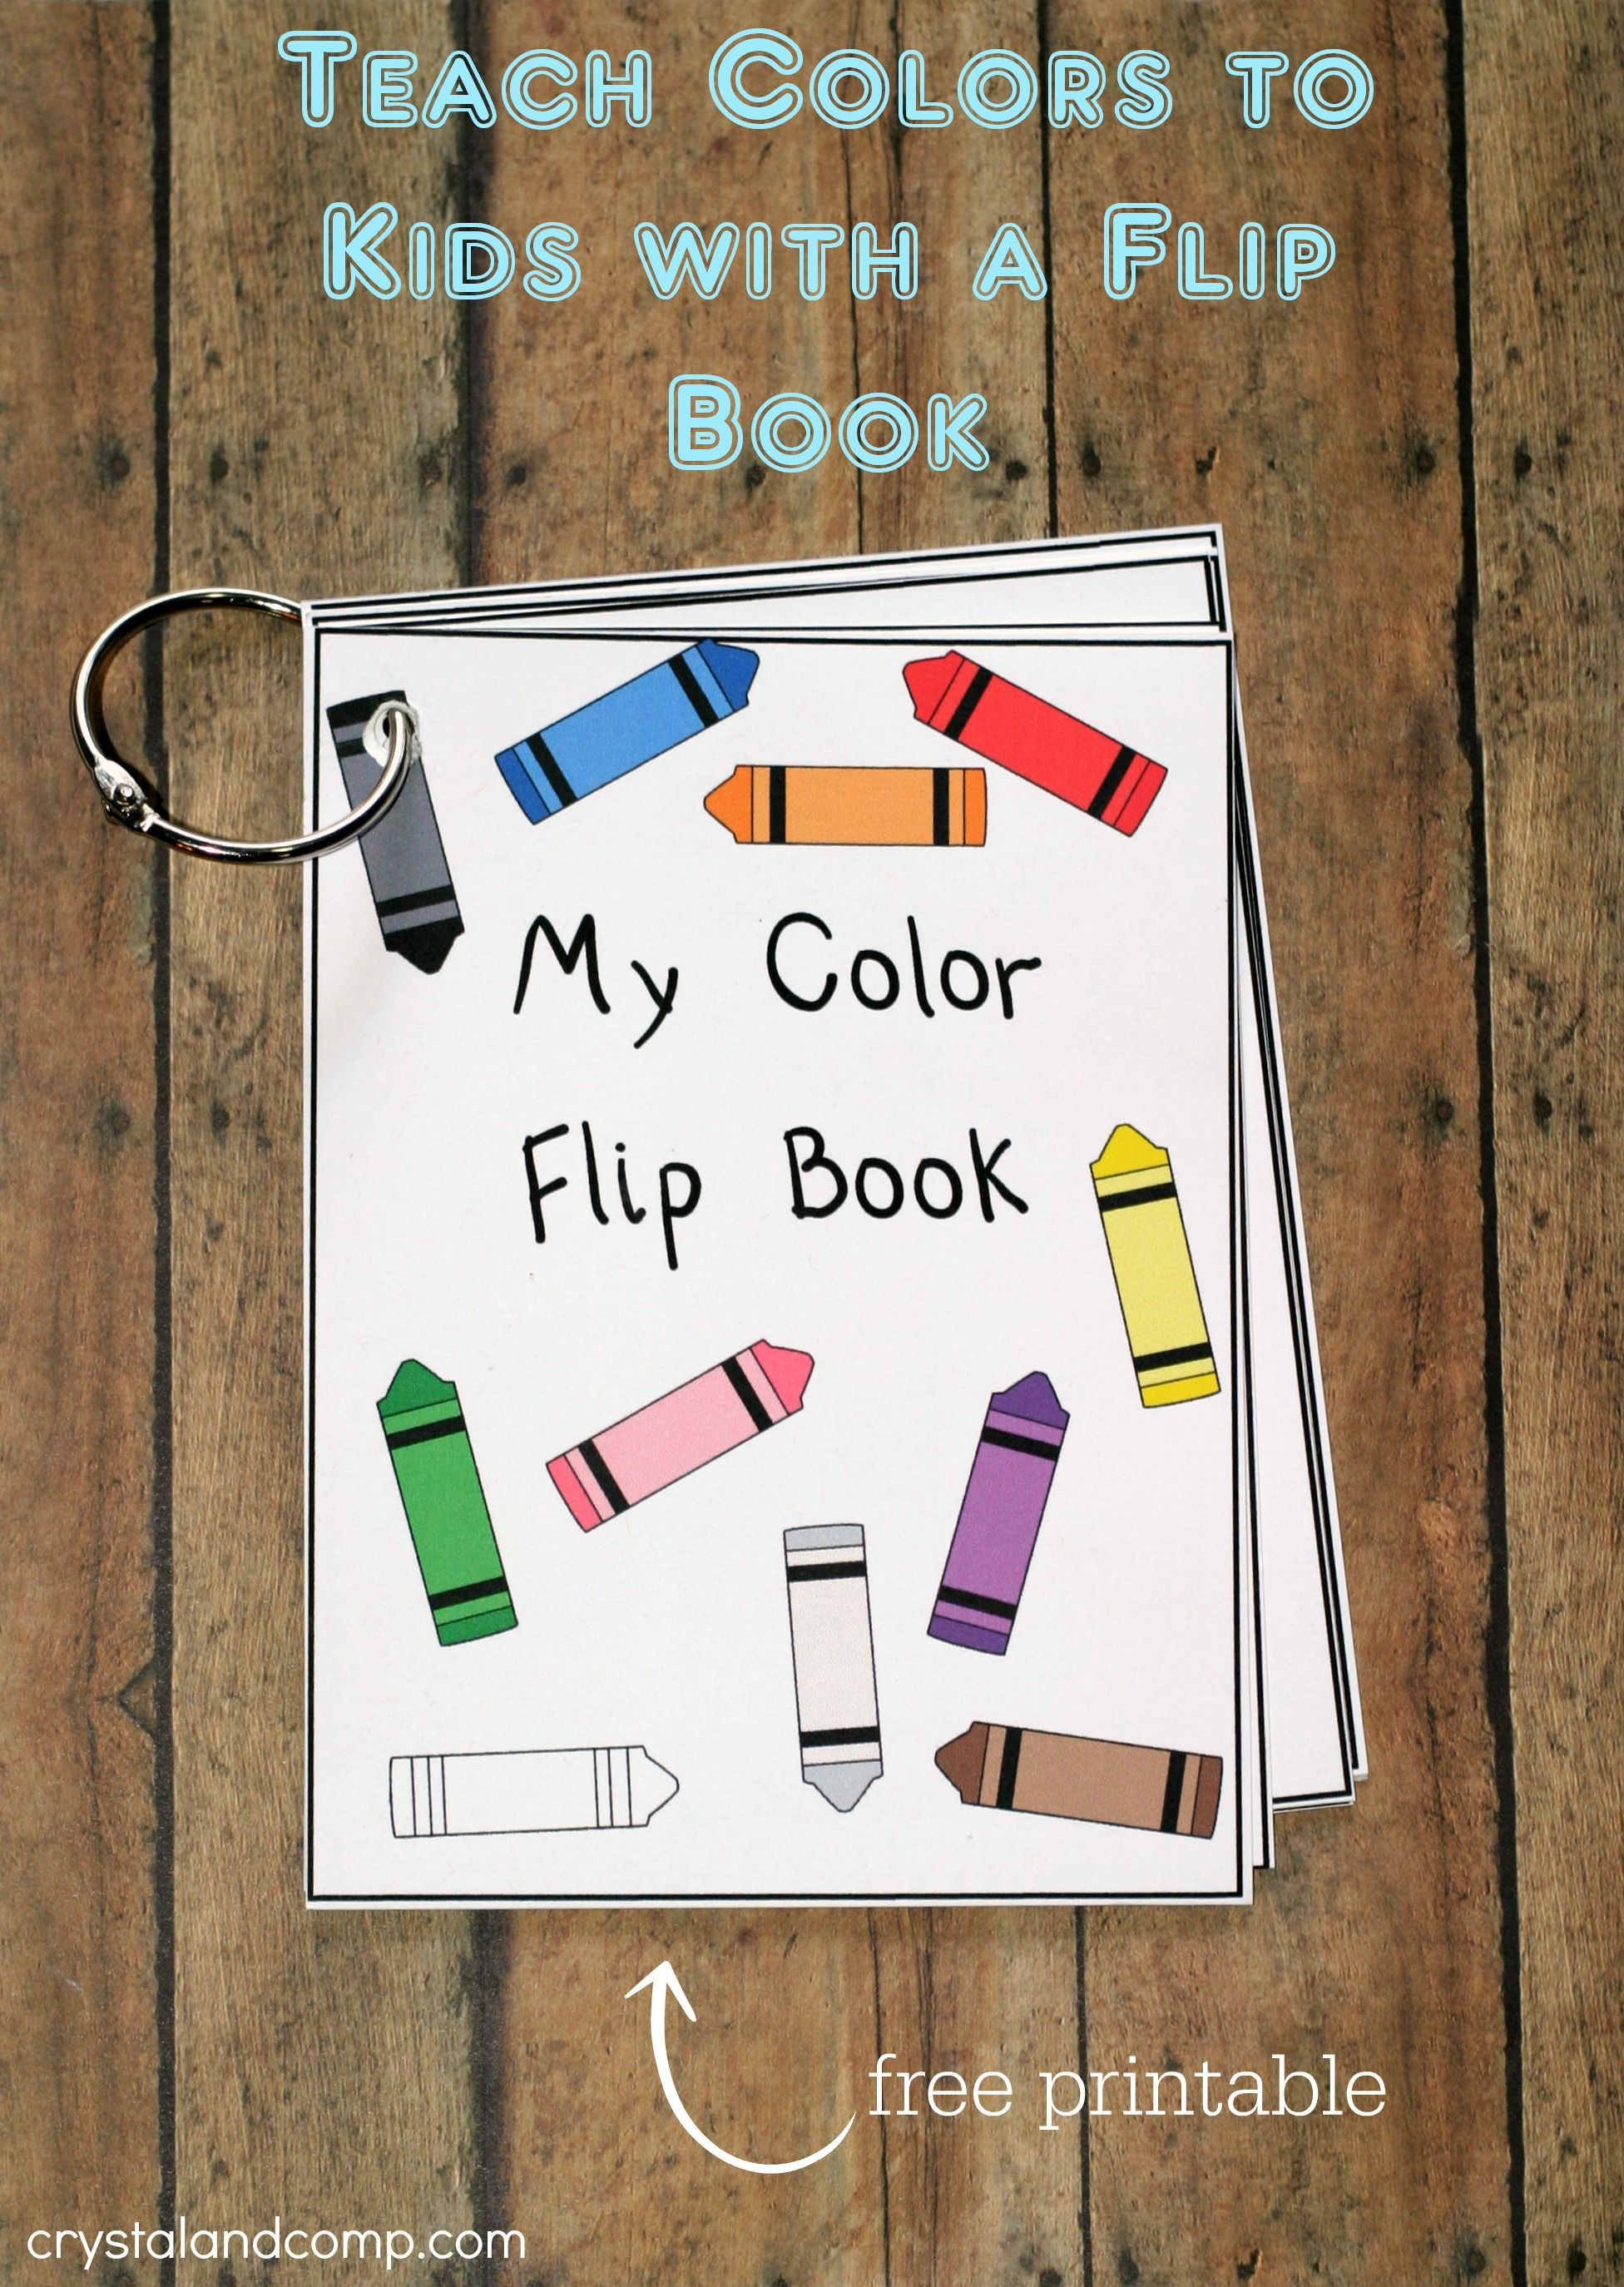 teach colors to kids free printable - Preschool Color Books